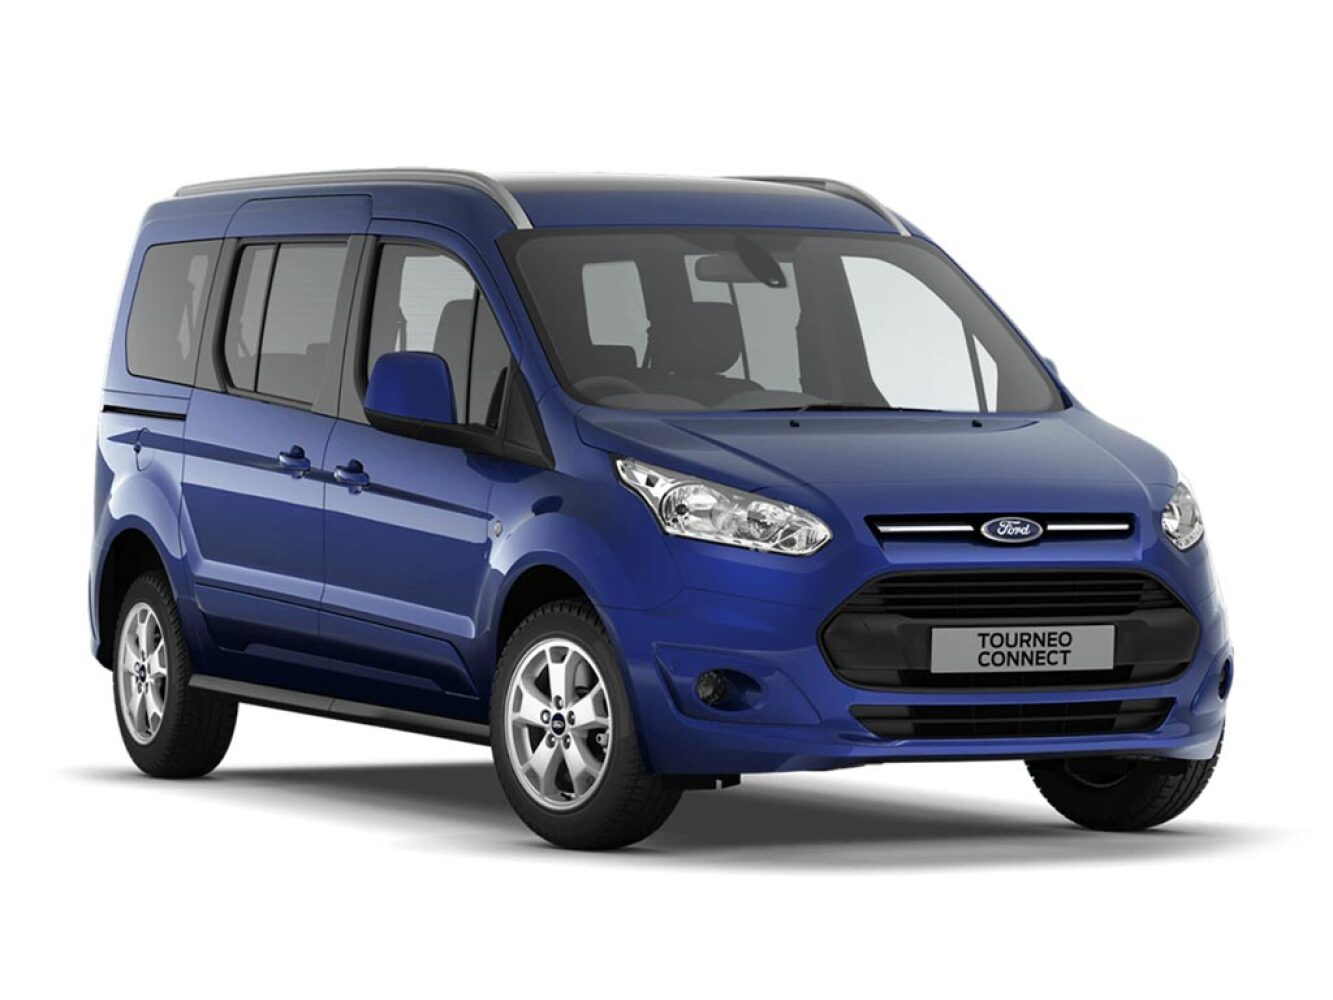 new ford grand tourneo connect 1 5 ecoblue 120 titanium. Black Bedroom Furniture Sets. Home Design Ideas